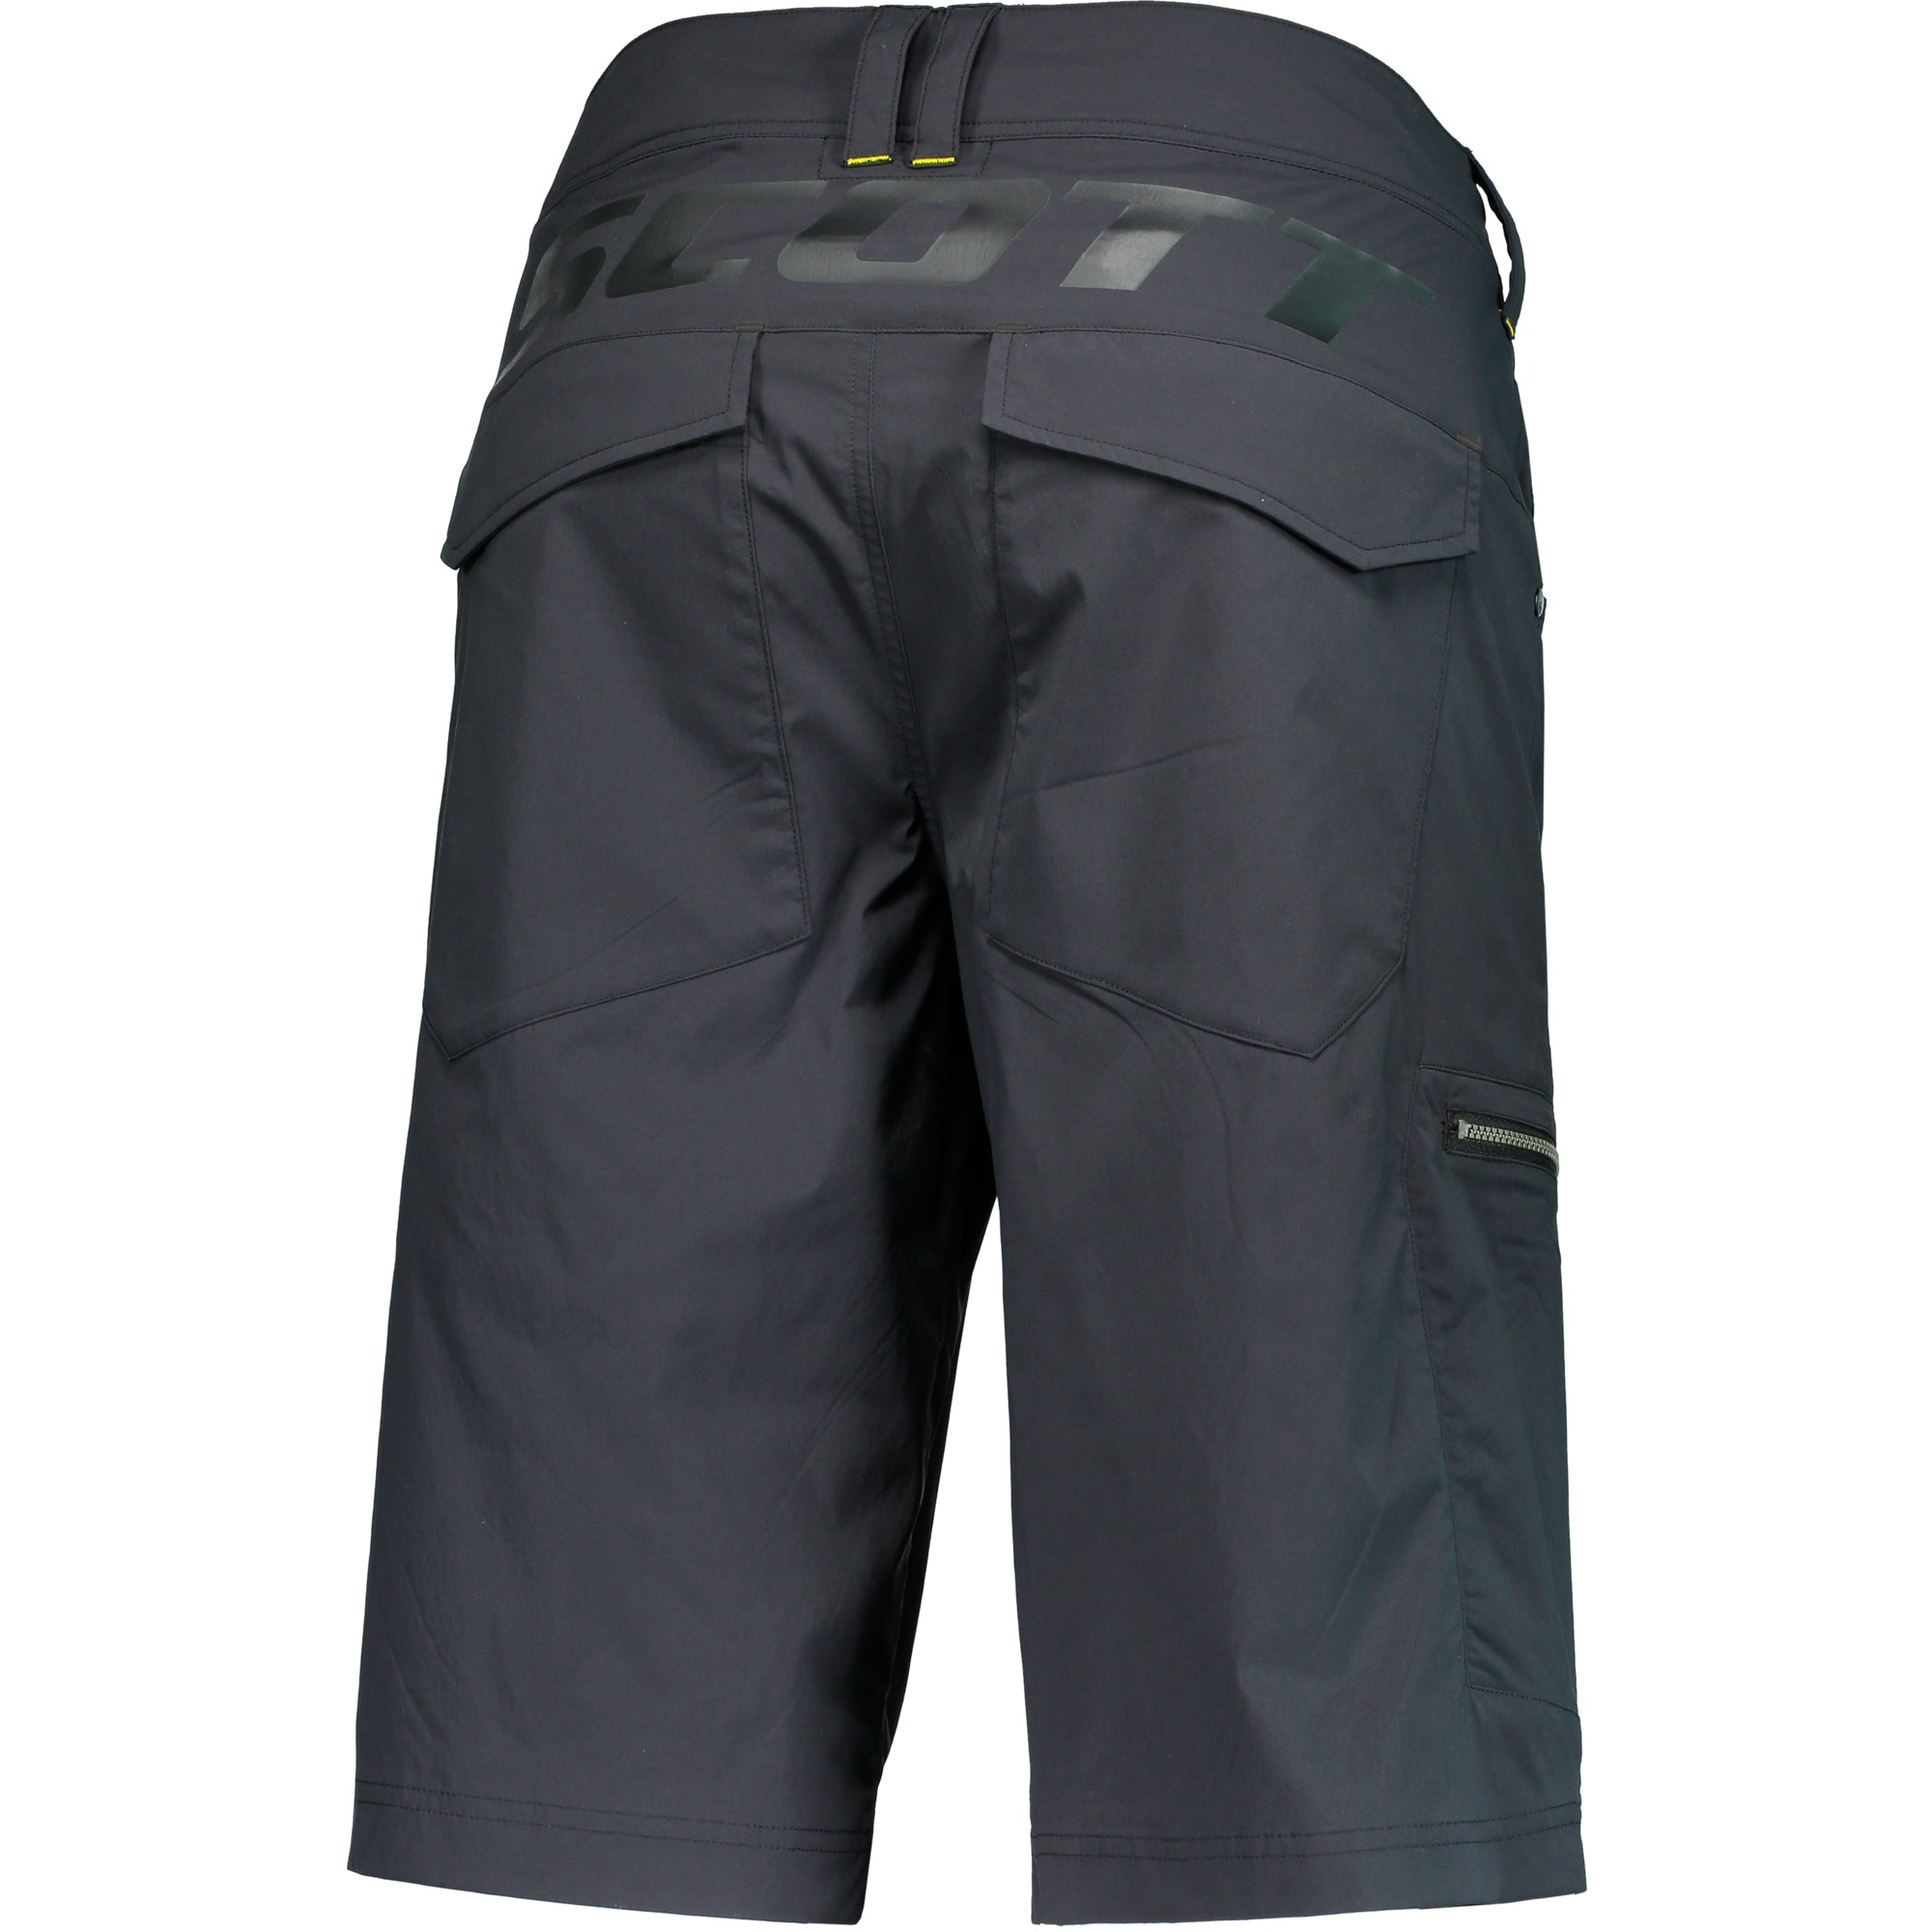 Pantaloncini SCOTT Factory Team Light